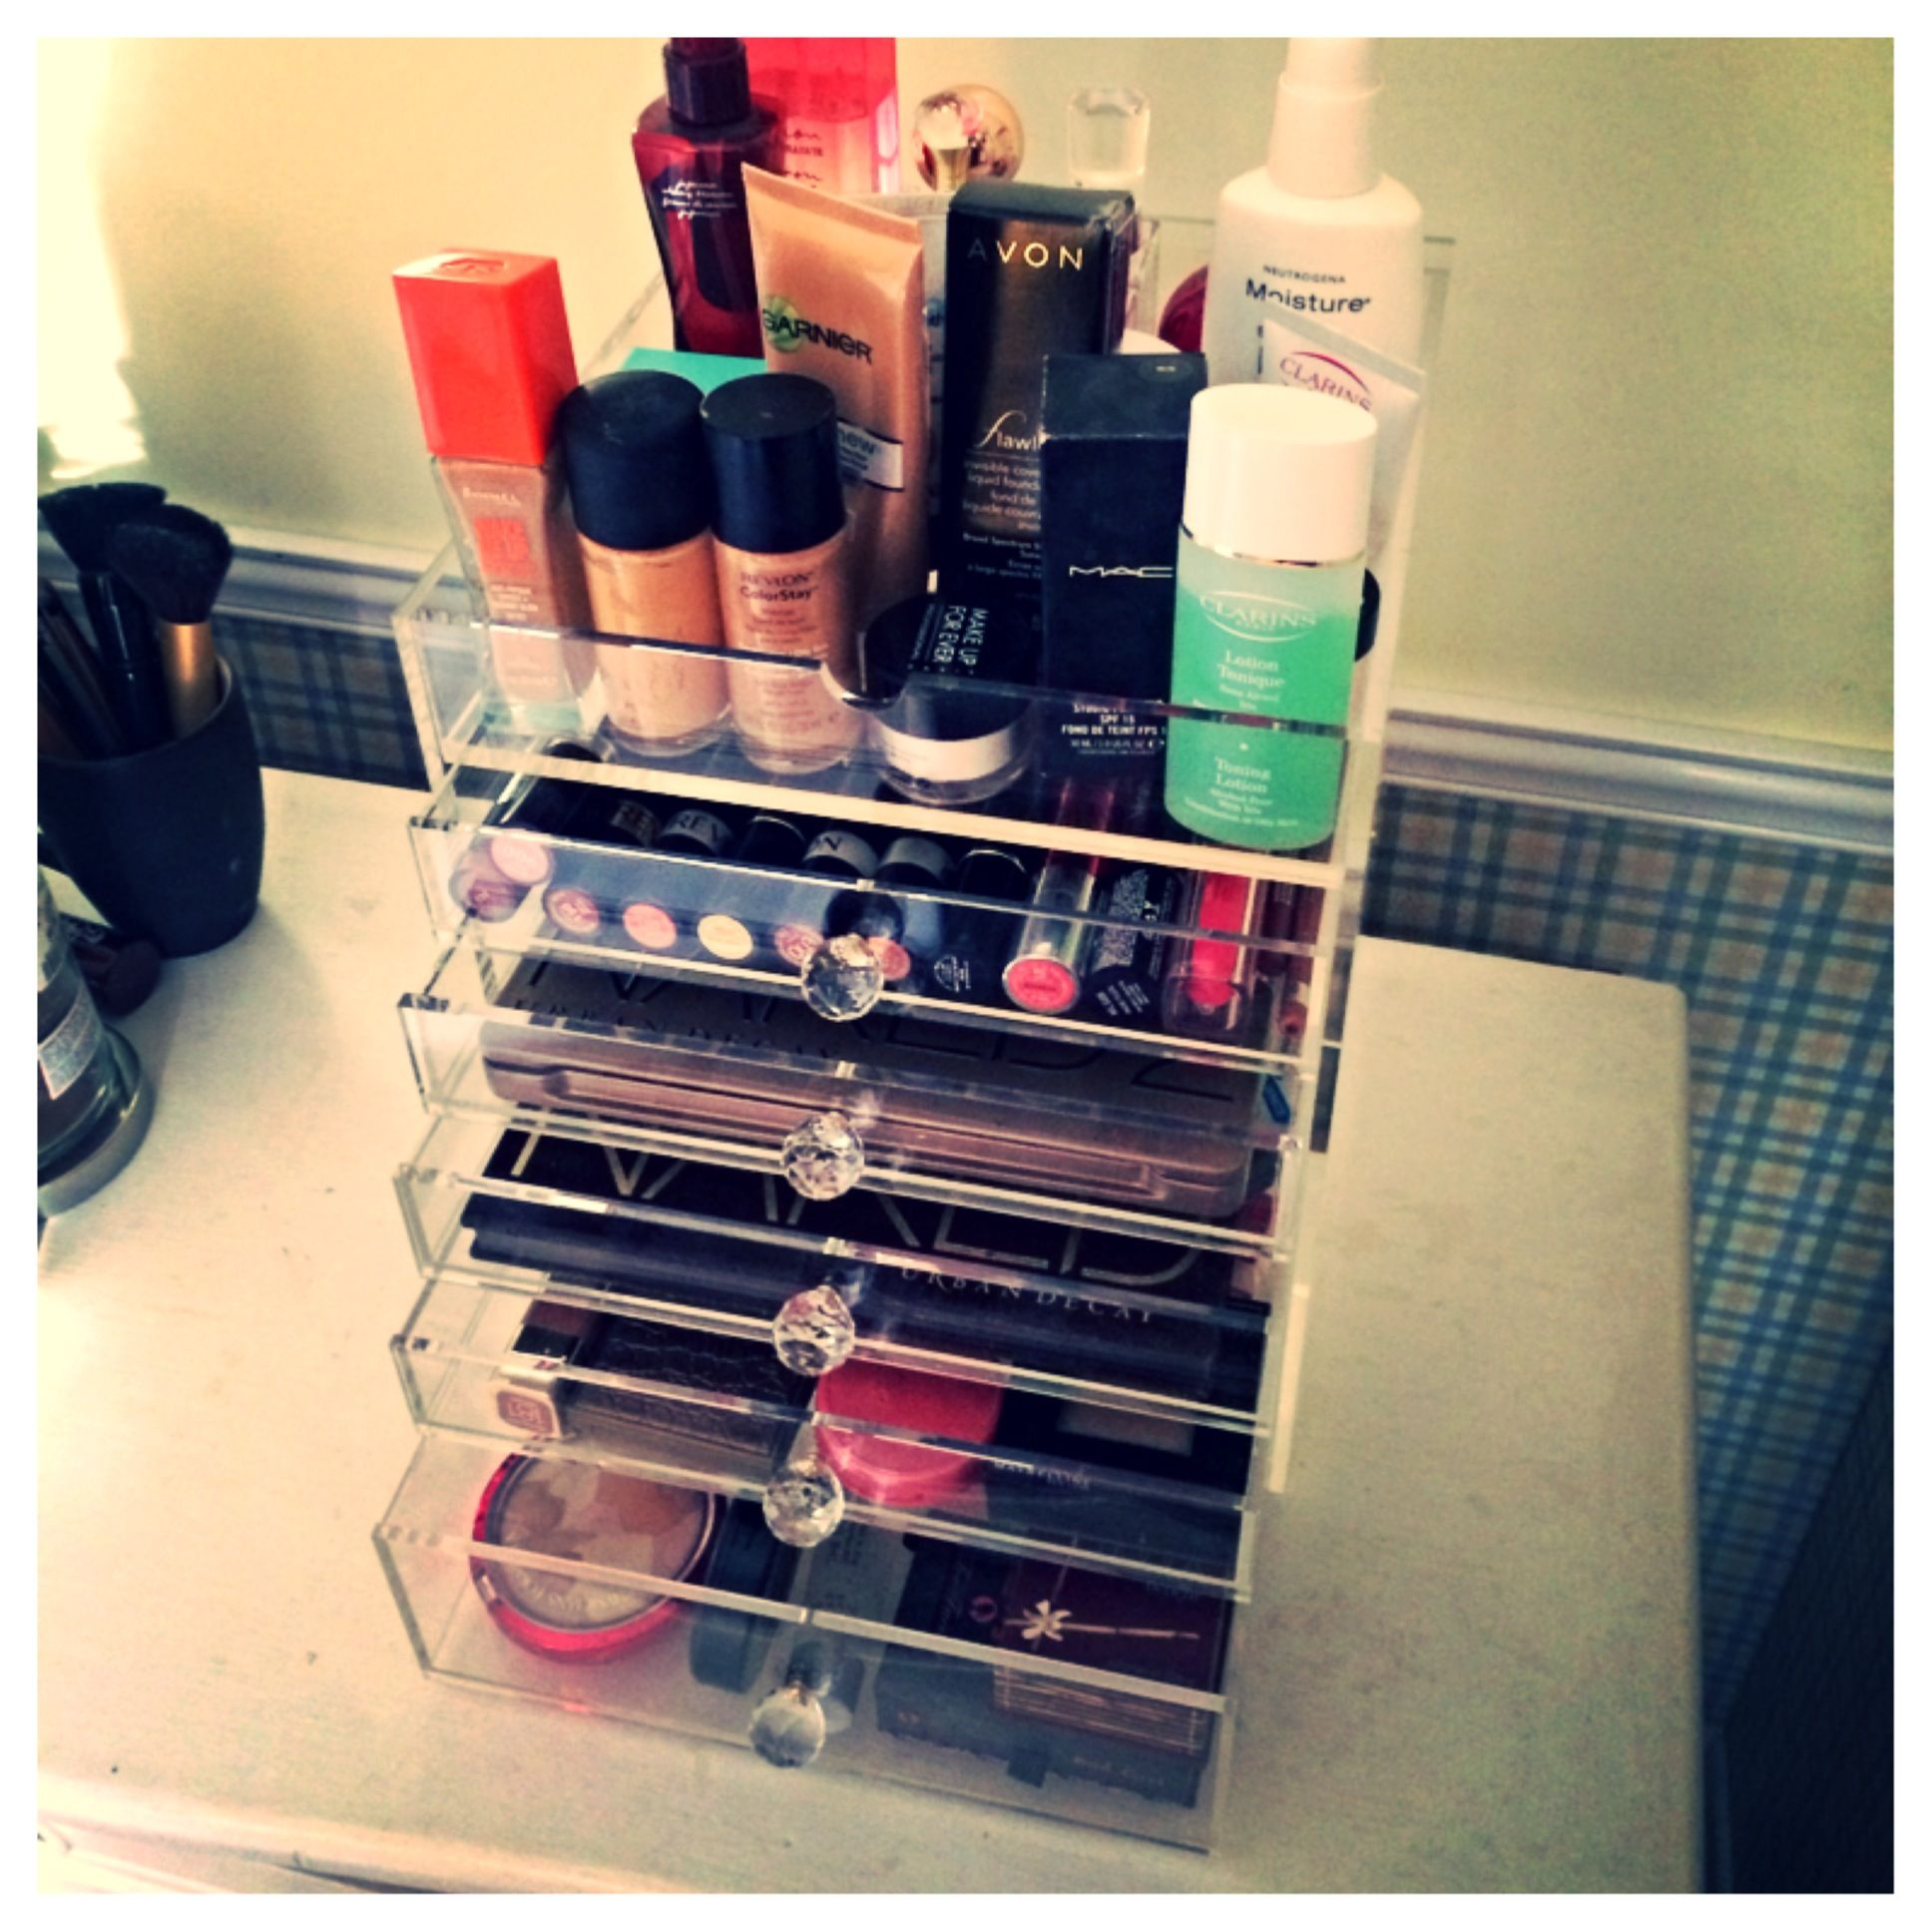 The Beauty Cube - Acrylic Makeup Organizer www.beautycubes.com